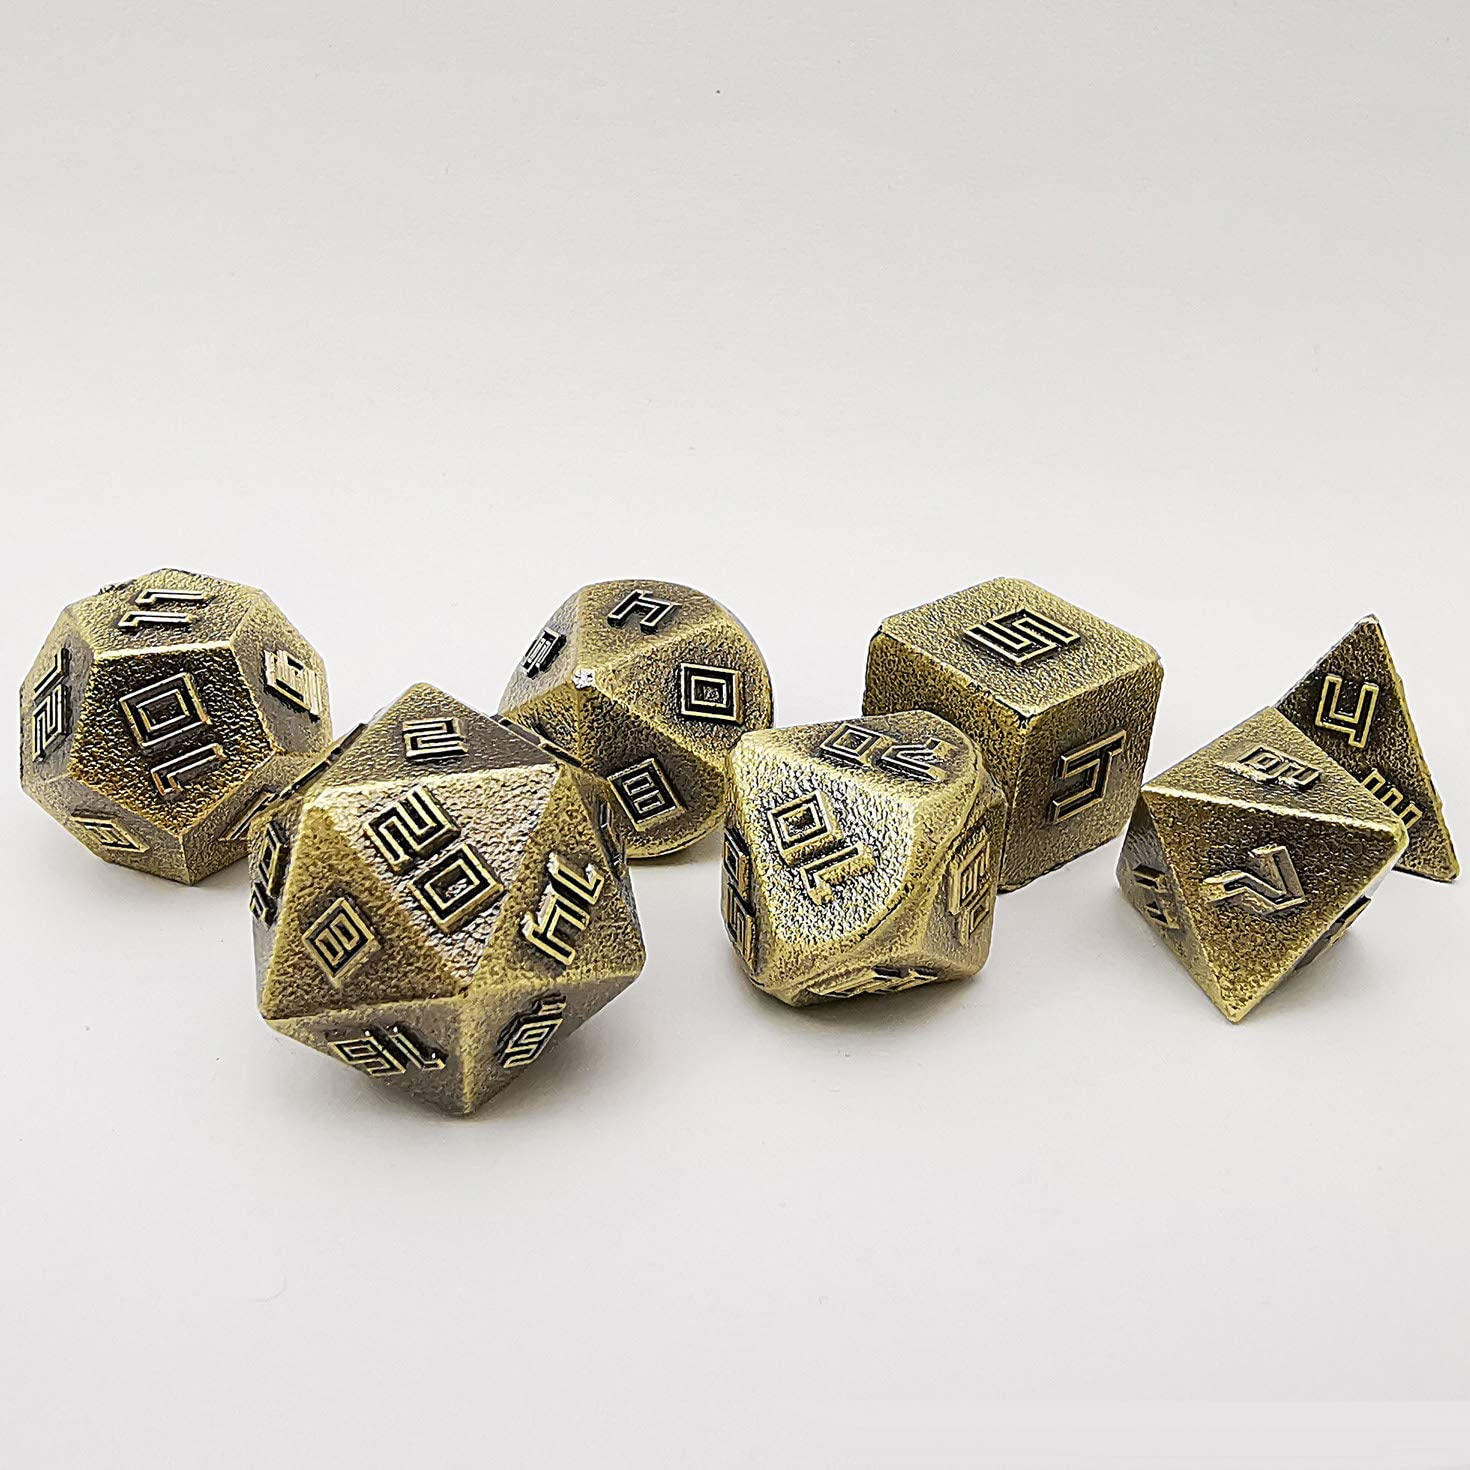 Amazon Com Bescon Brass Ore Lode Solid Metal Dice Set Raw Metal Polyhedral D D Rpg 7 Dice Set Sports Outdoors